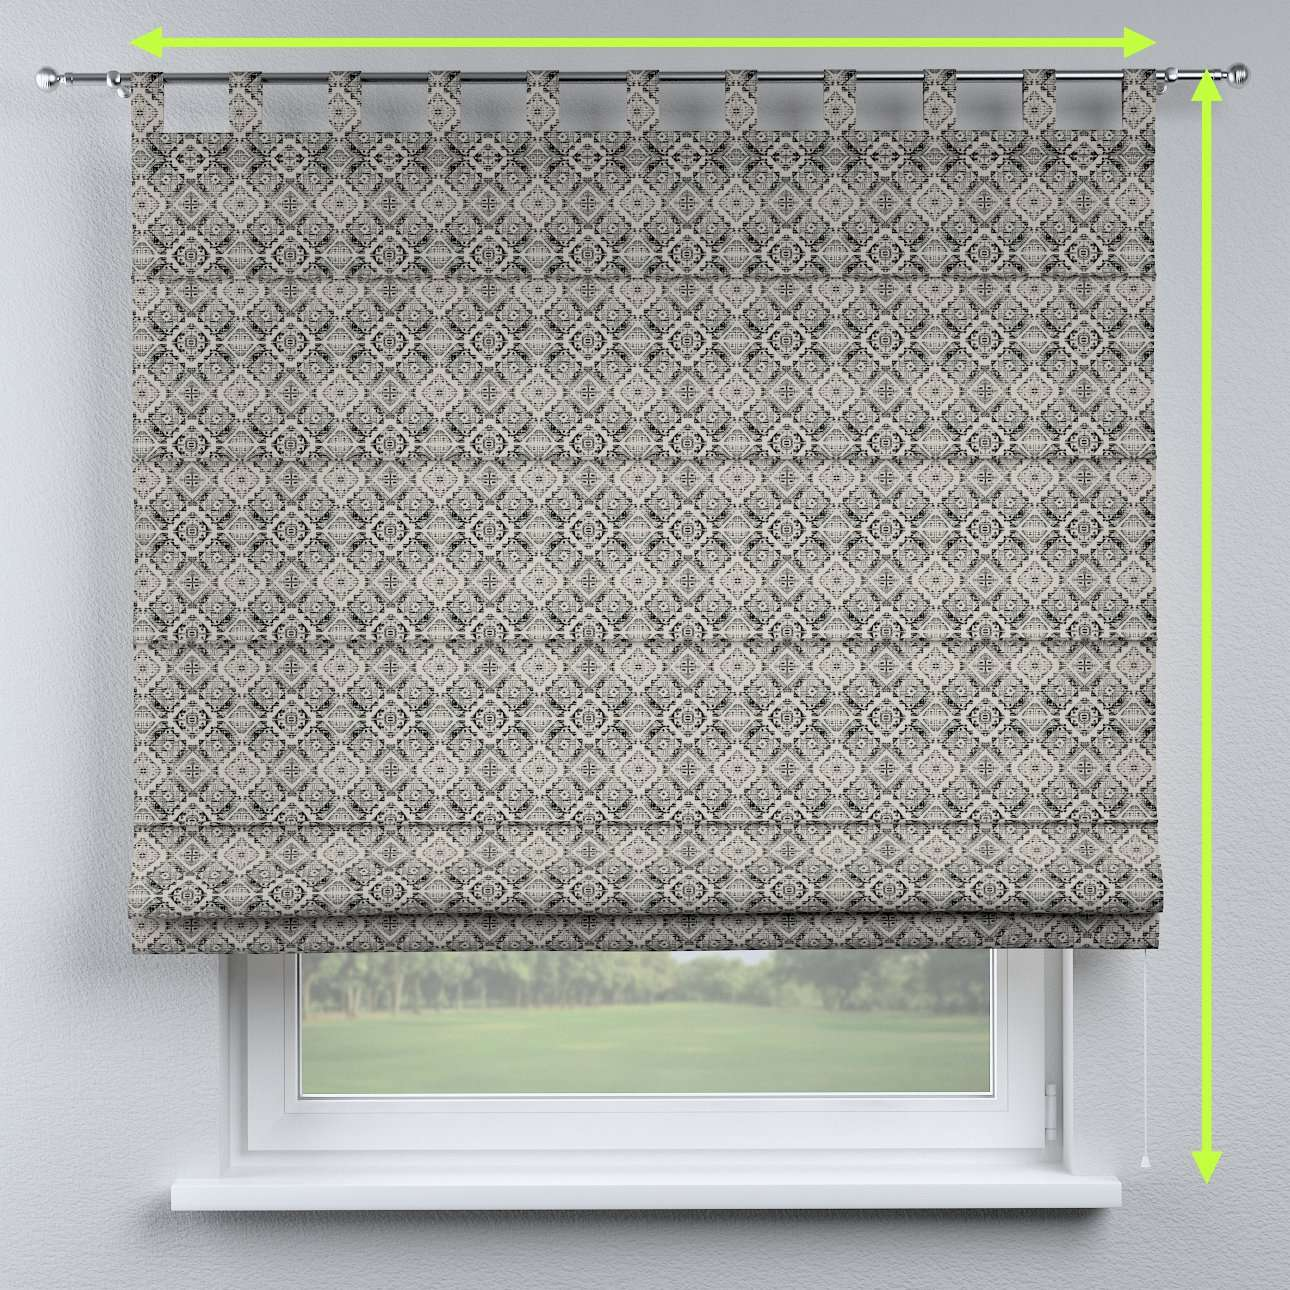 Verona tab top roman blind in collection Comic Book & Geo Prints, fabric: 141-18